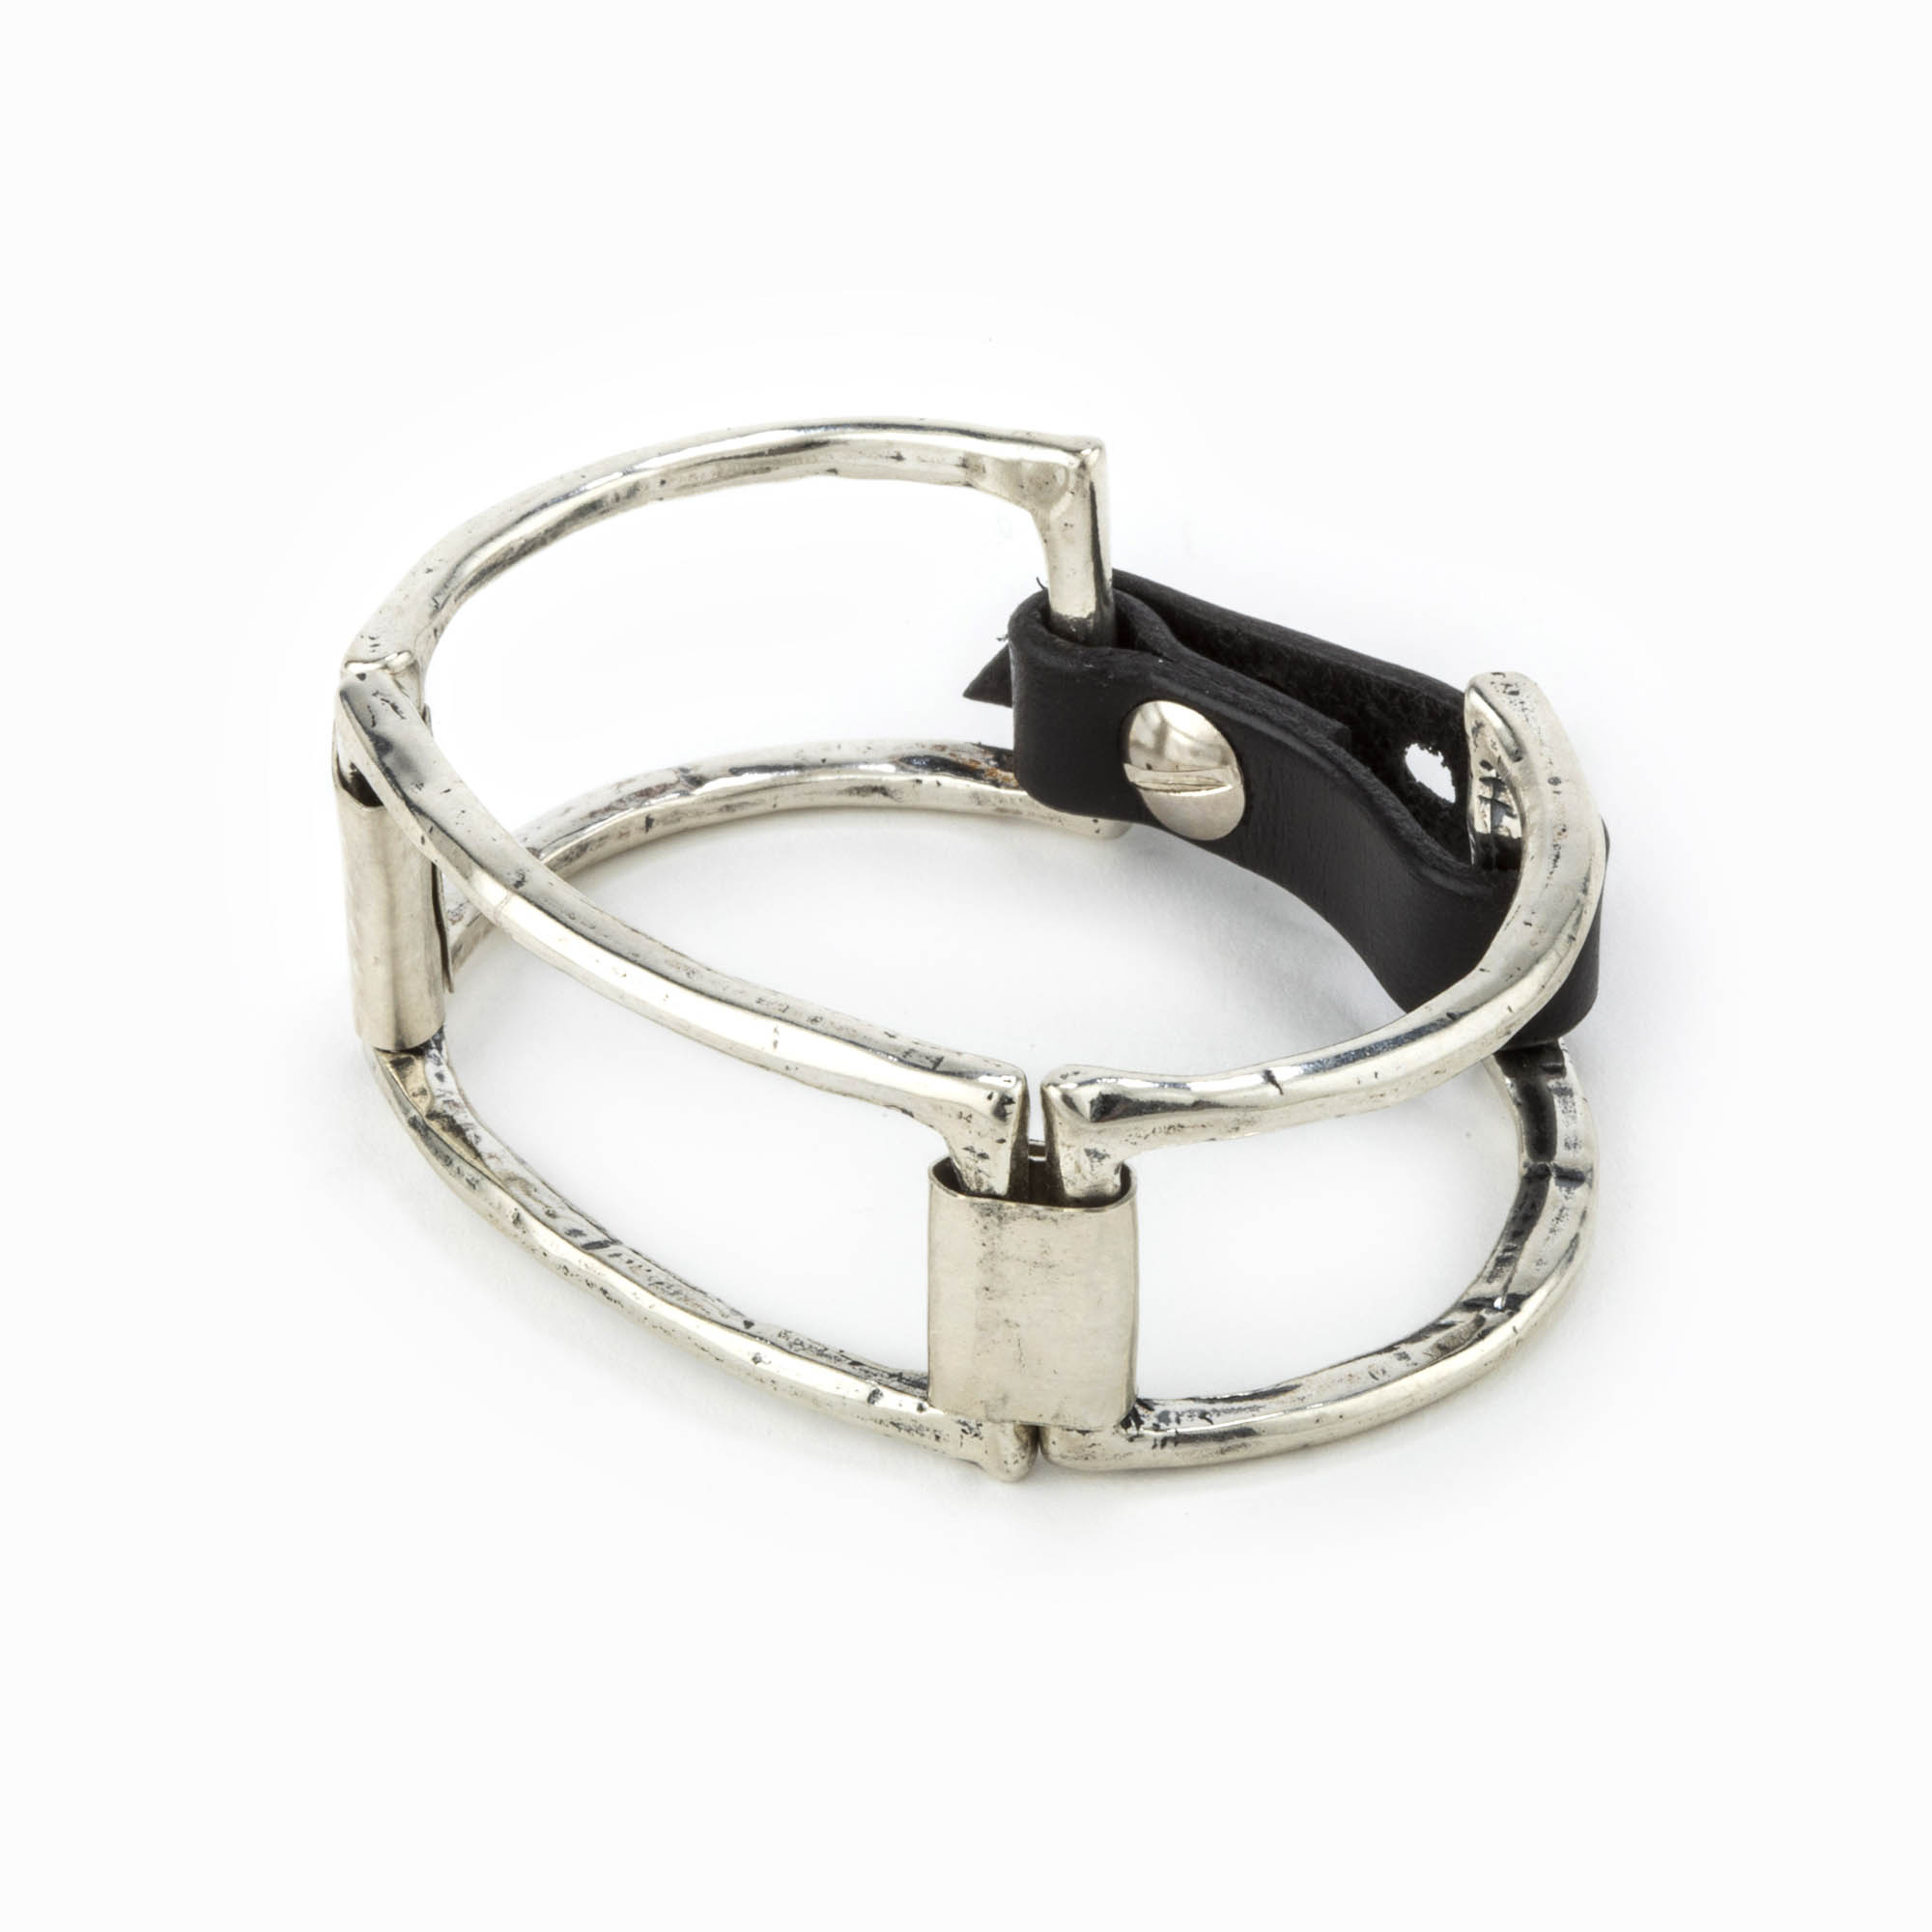 A rhodium casted cuff with large square pieces linked together with sterling silver plates and an adjustable leather closure.